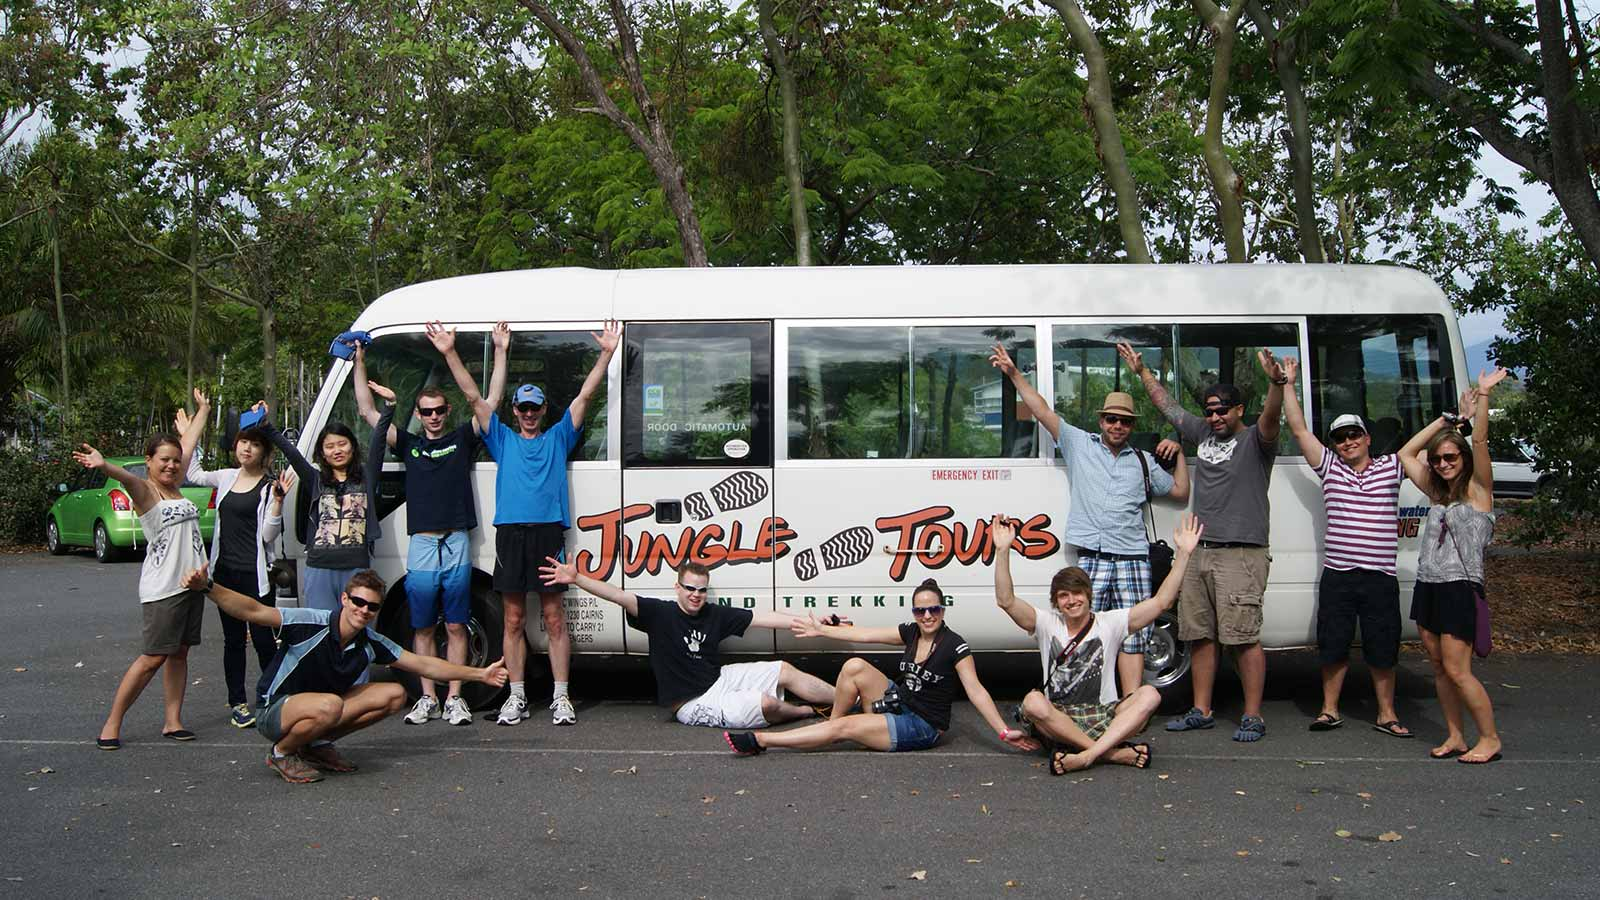 Tour group with the tour bus